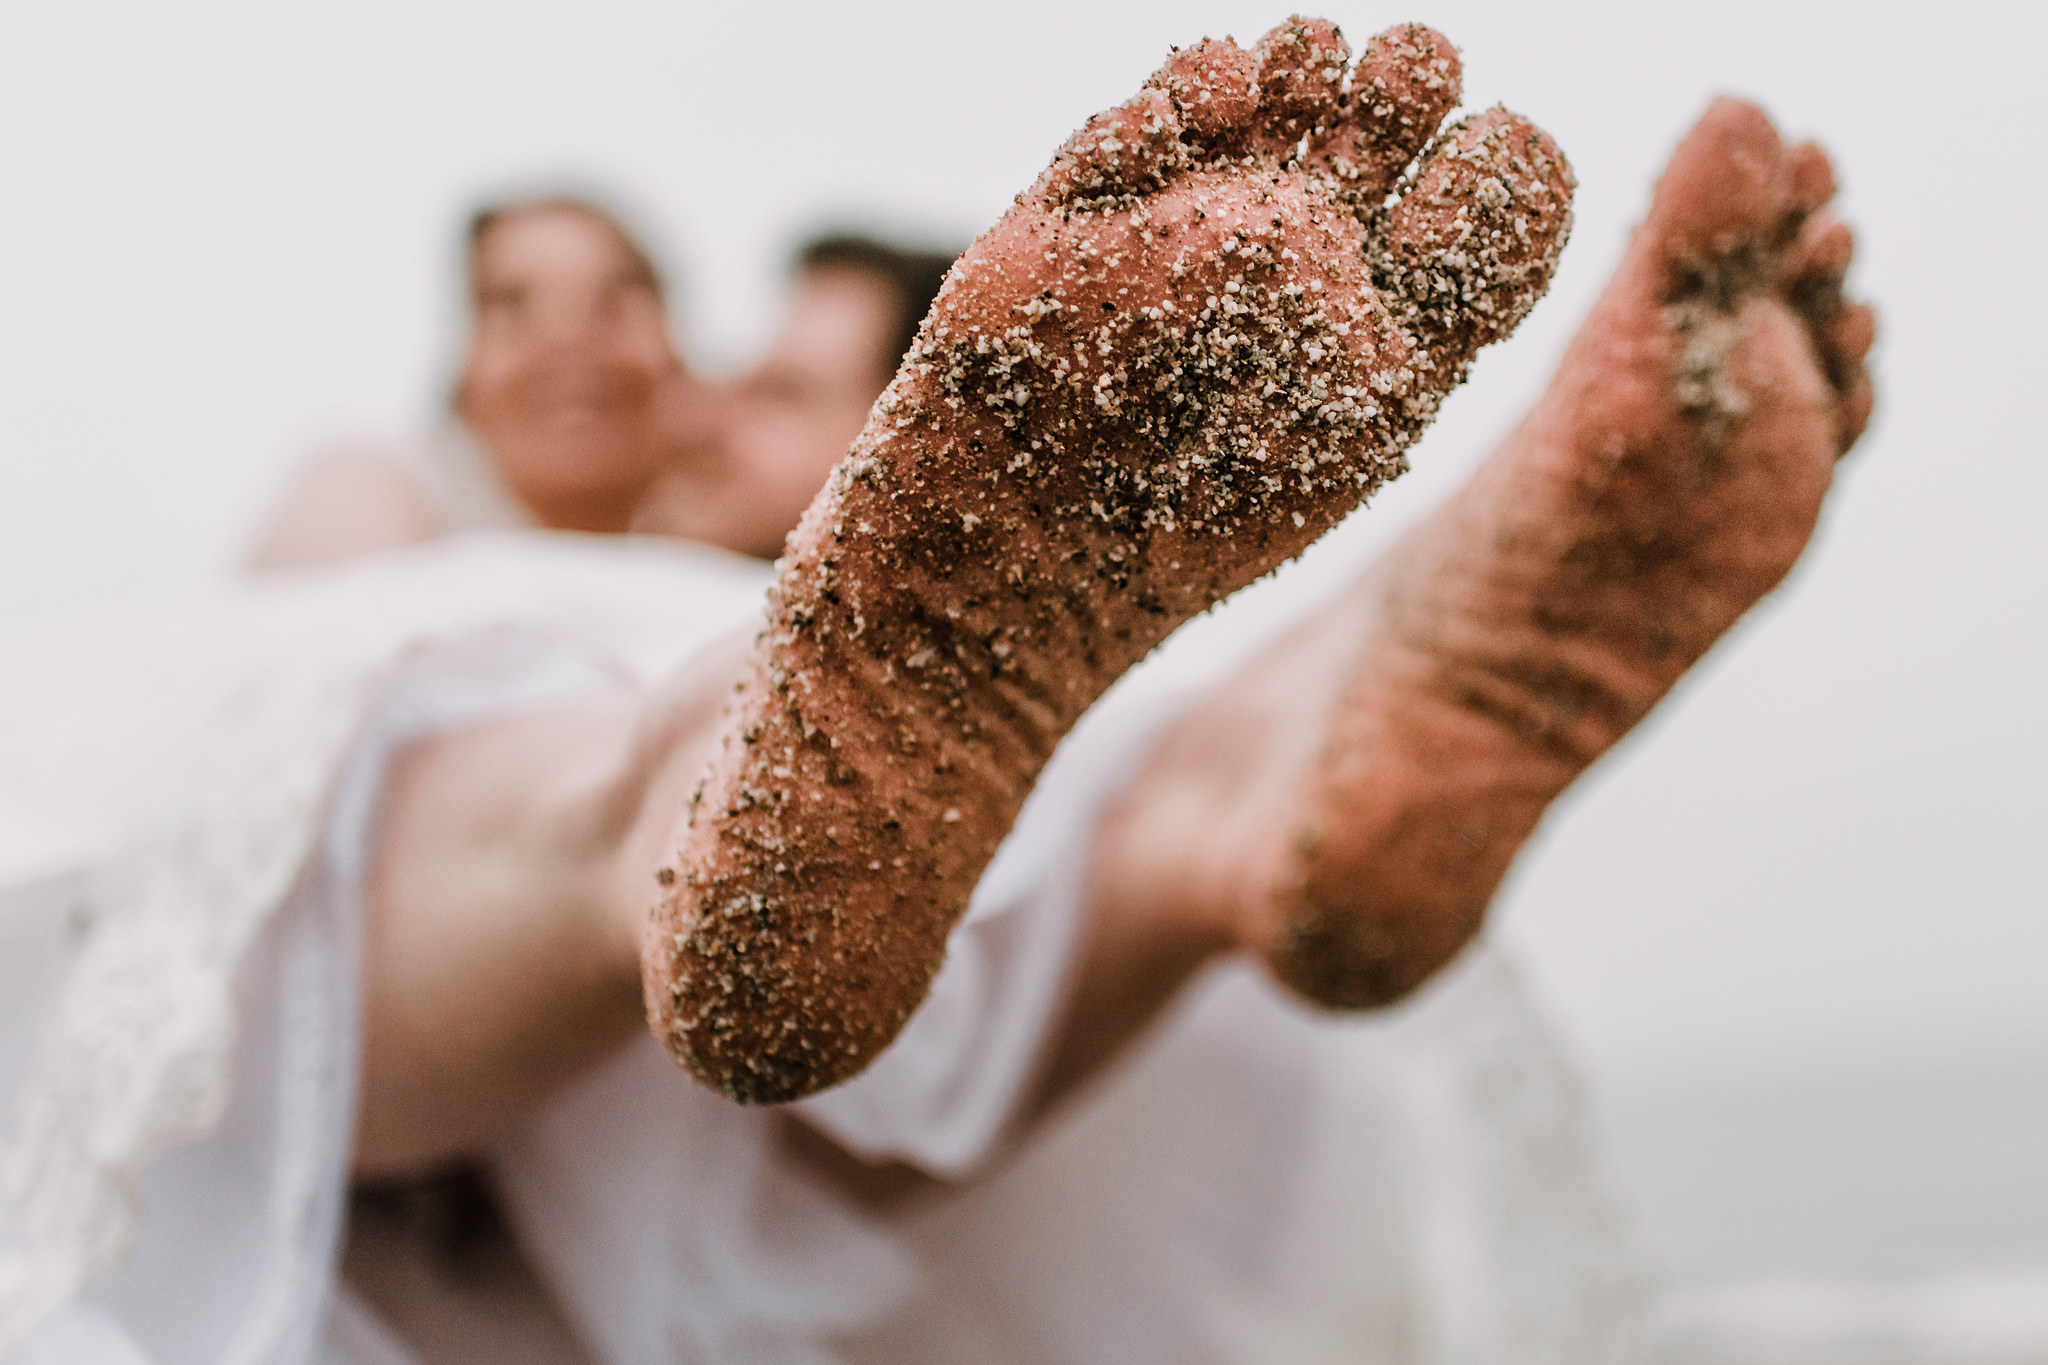 The bottom of brides feet being carried away by groom - photo by Rich Howman - UK